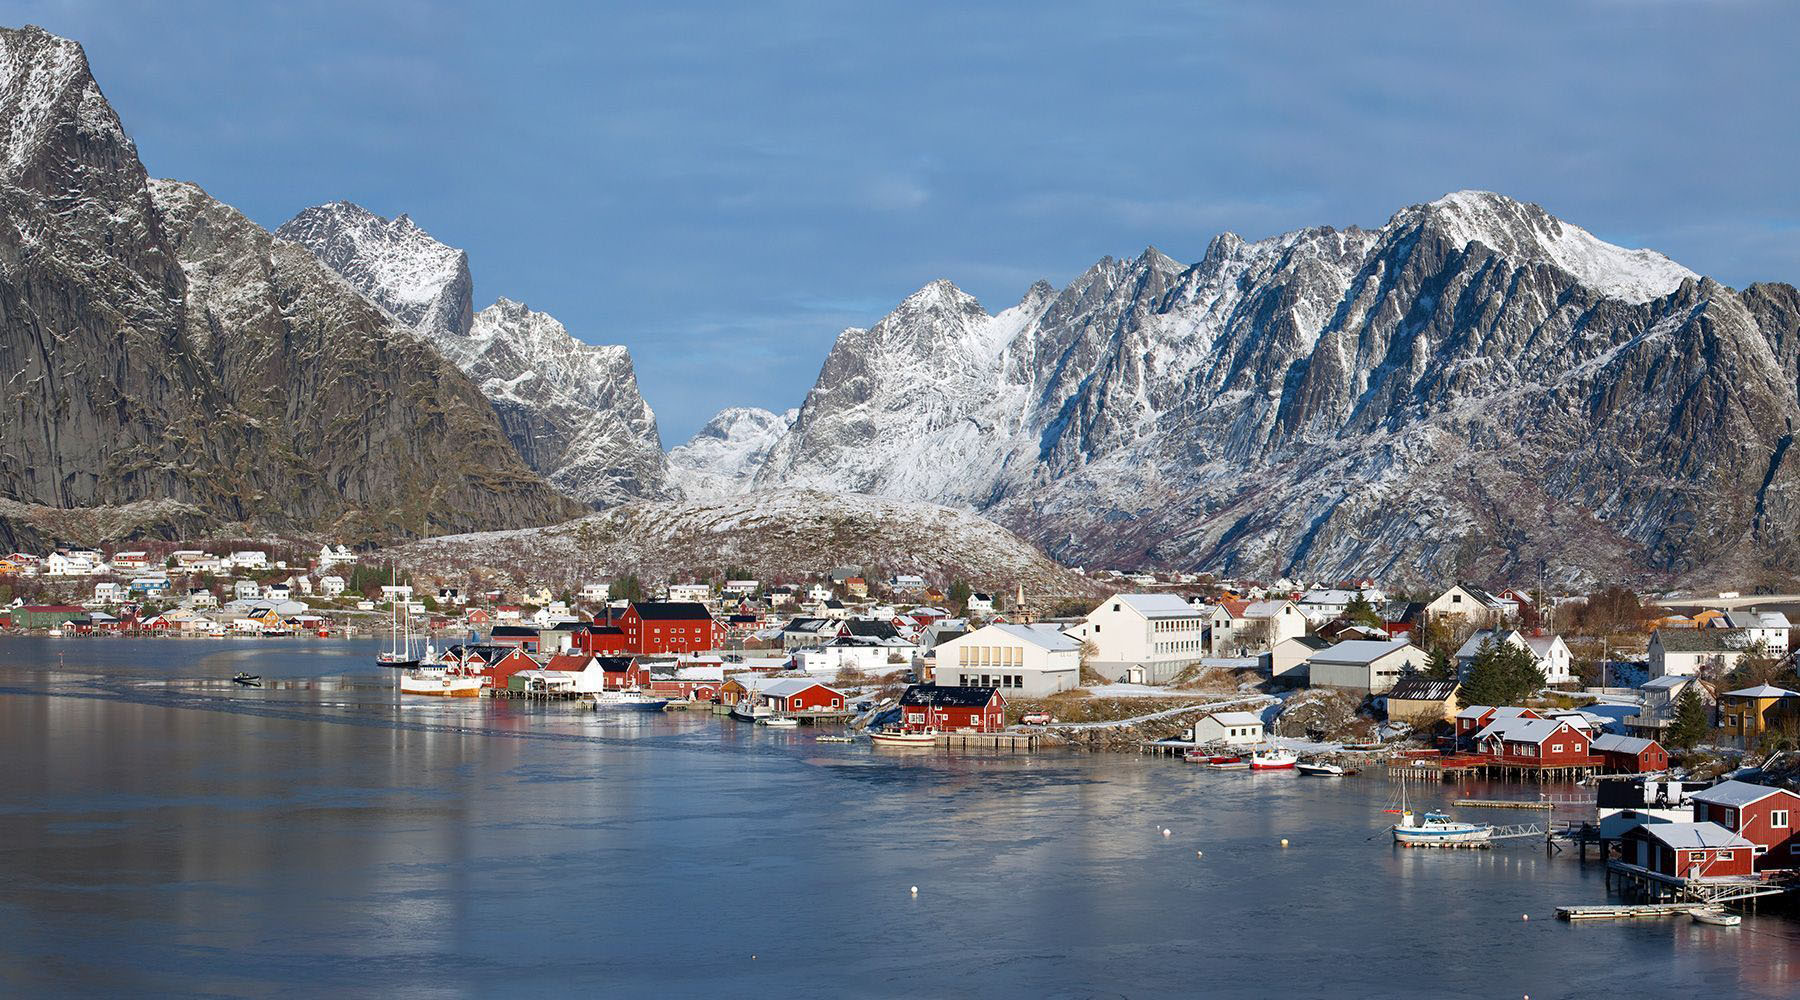 Luxury Voyages to Svolvaer, Lofoten Islands, Norway